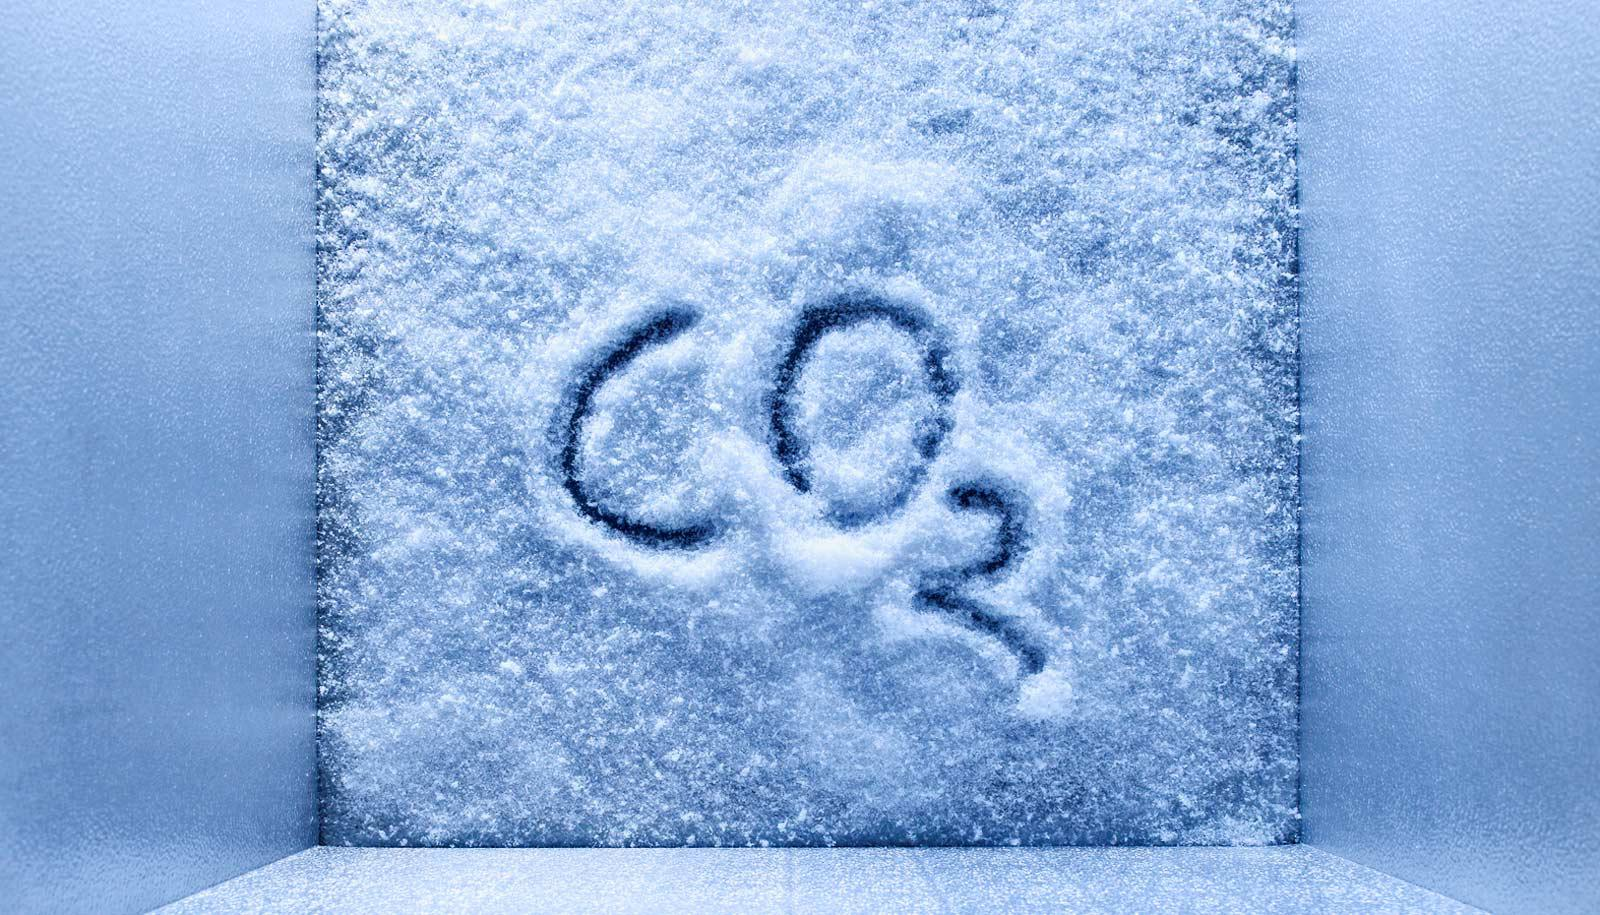 """CO2"" written in frost - breast cancer treatment concept"